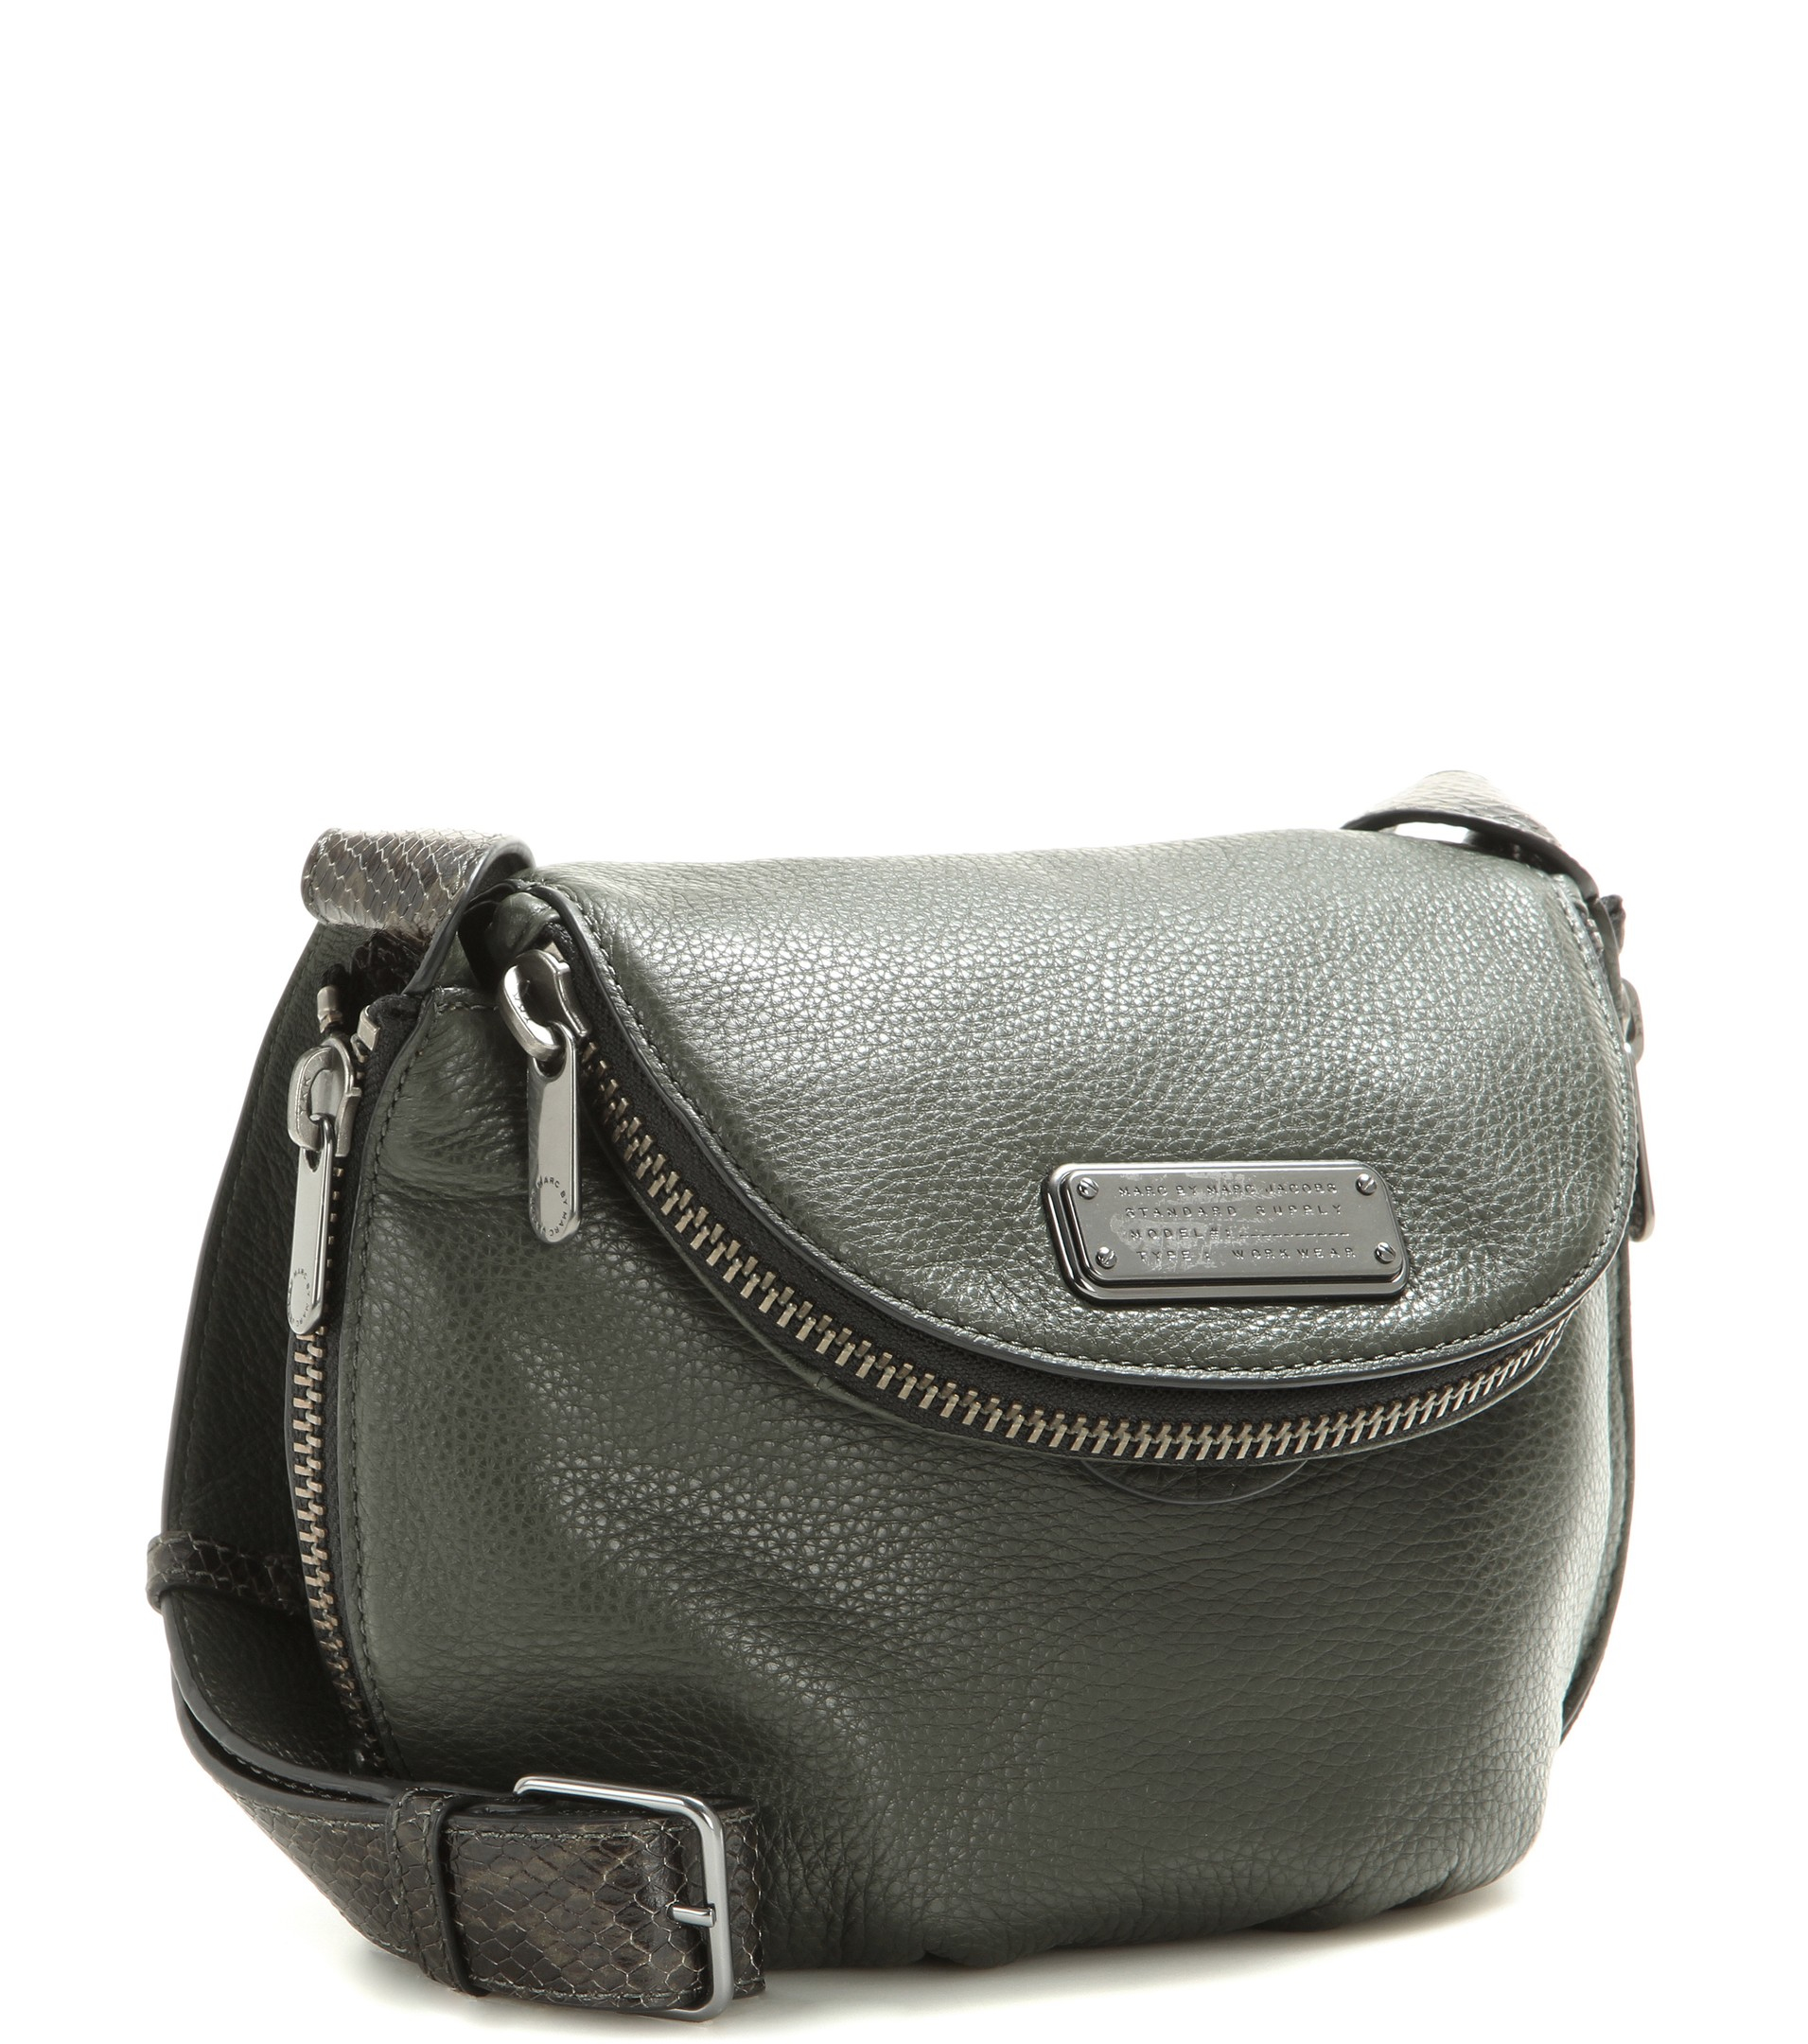 ... Marc By Marc Jacobs Mini Natasha Leather Shoulder Bag in Gre brand new  0068c e787e ... 711a76839e320